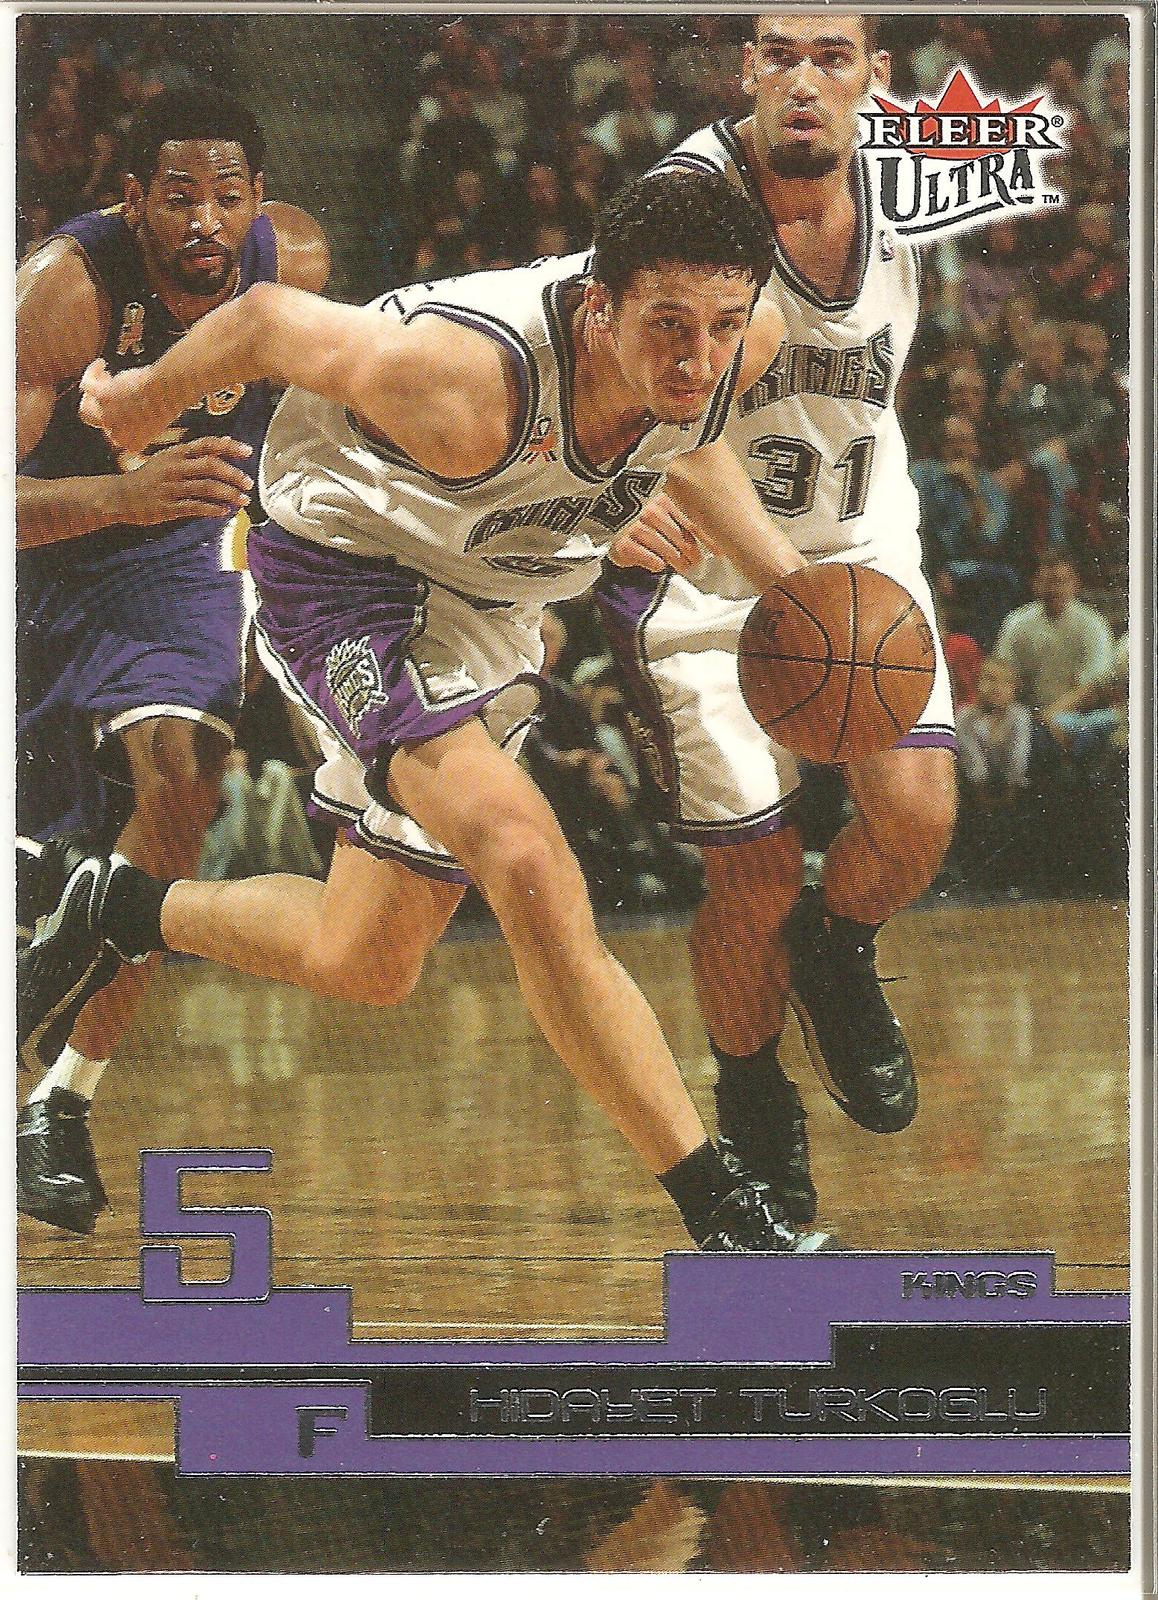 Hidayet Turkaglu Fleer Ultra 02-03 #17 Sacramento Kings Orlando Magic LA Clipper